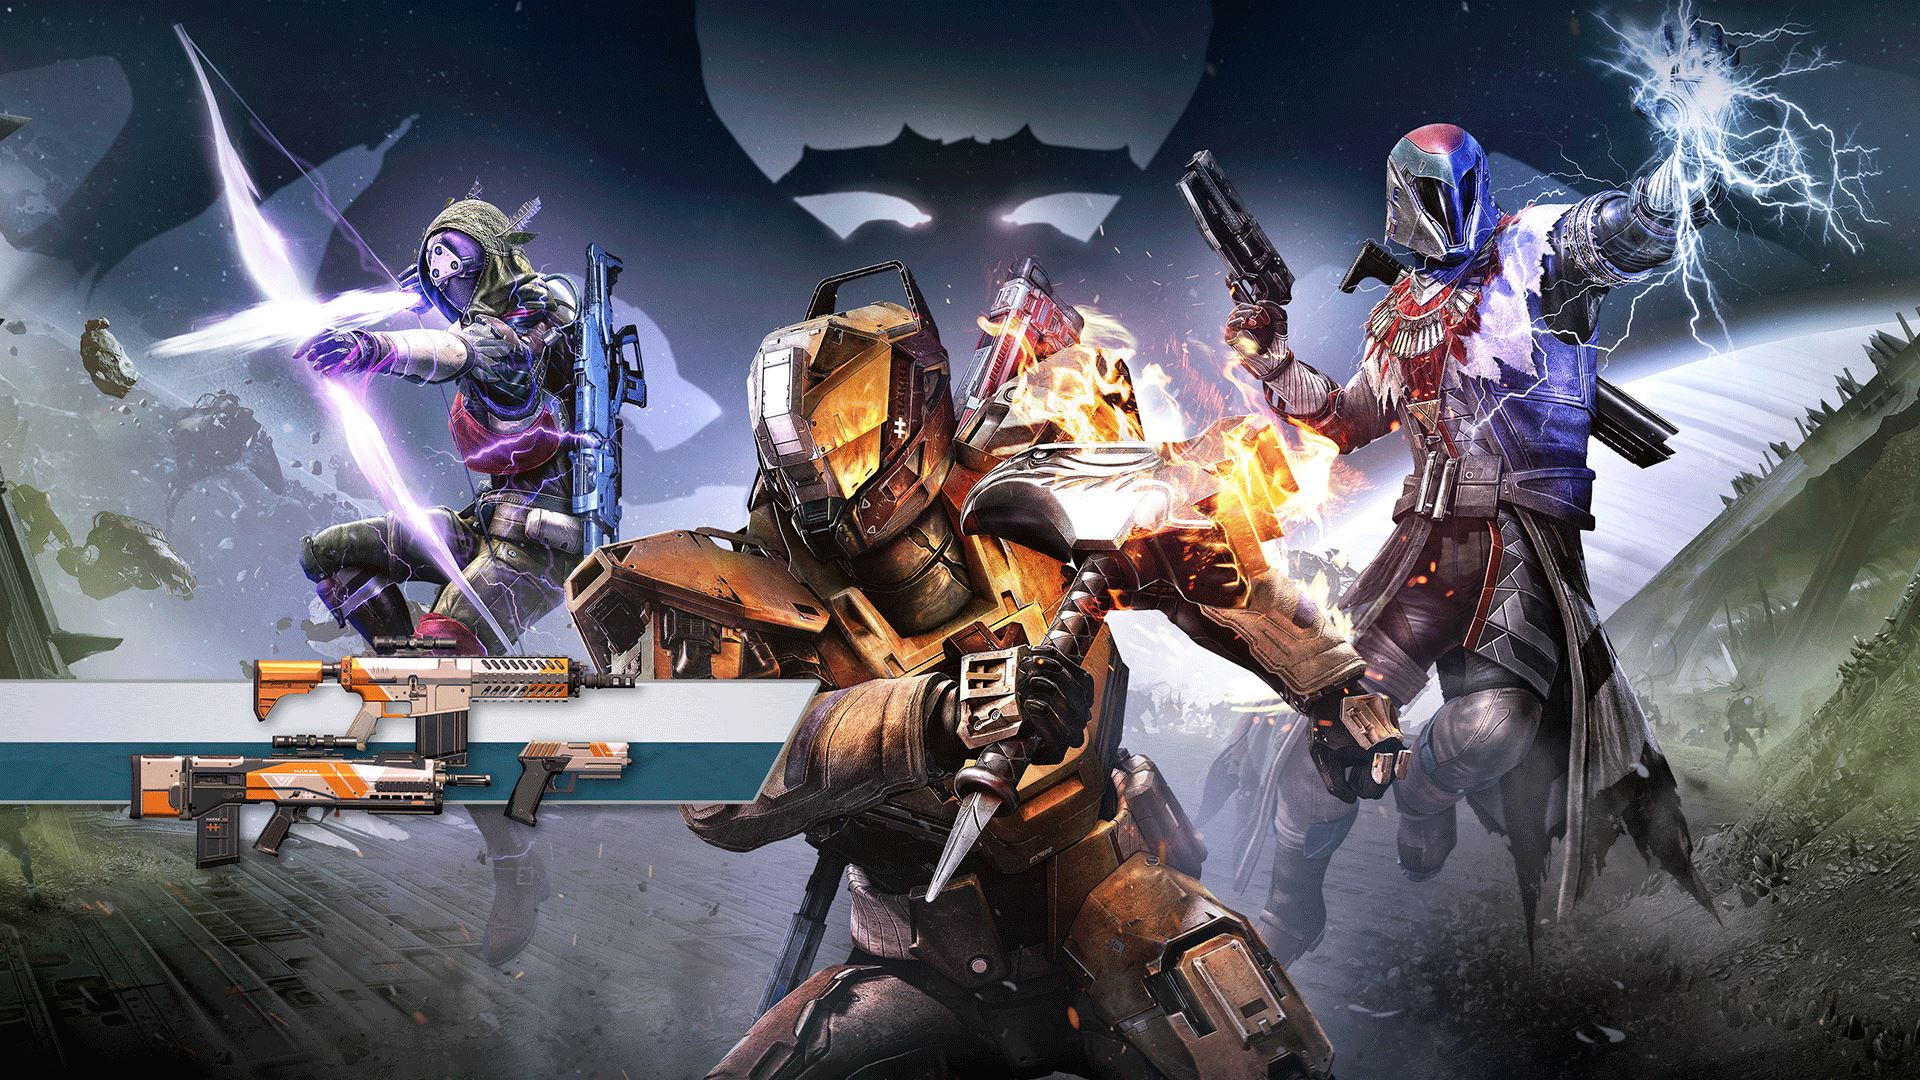 Destiny The Taken King Video Game Wallpaper 1920x1080